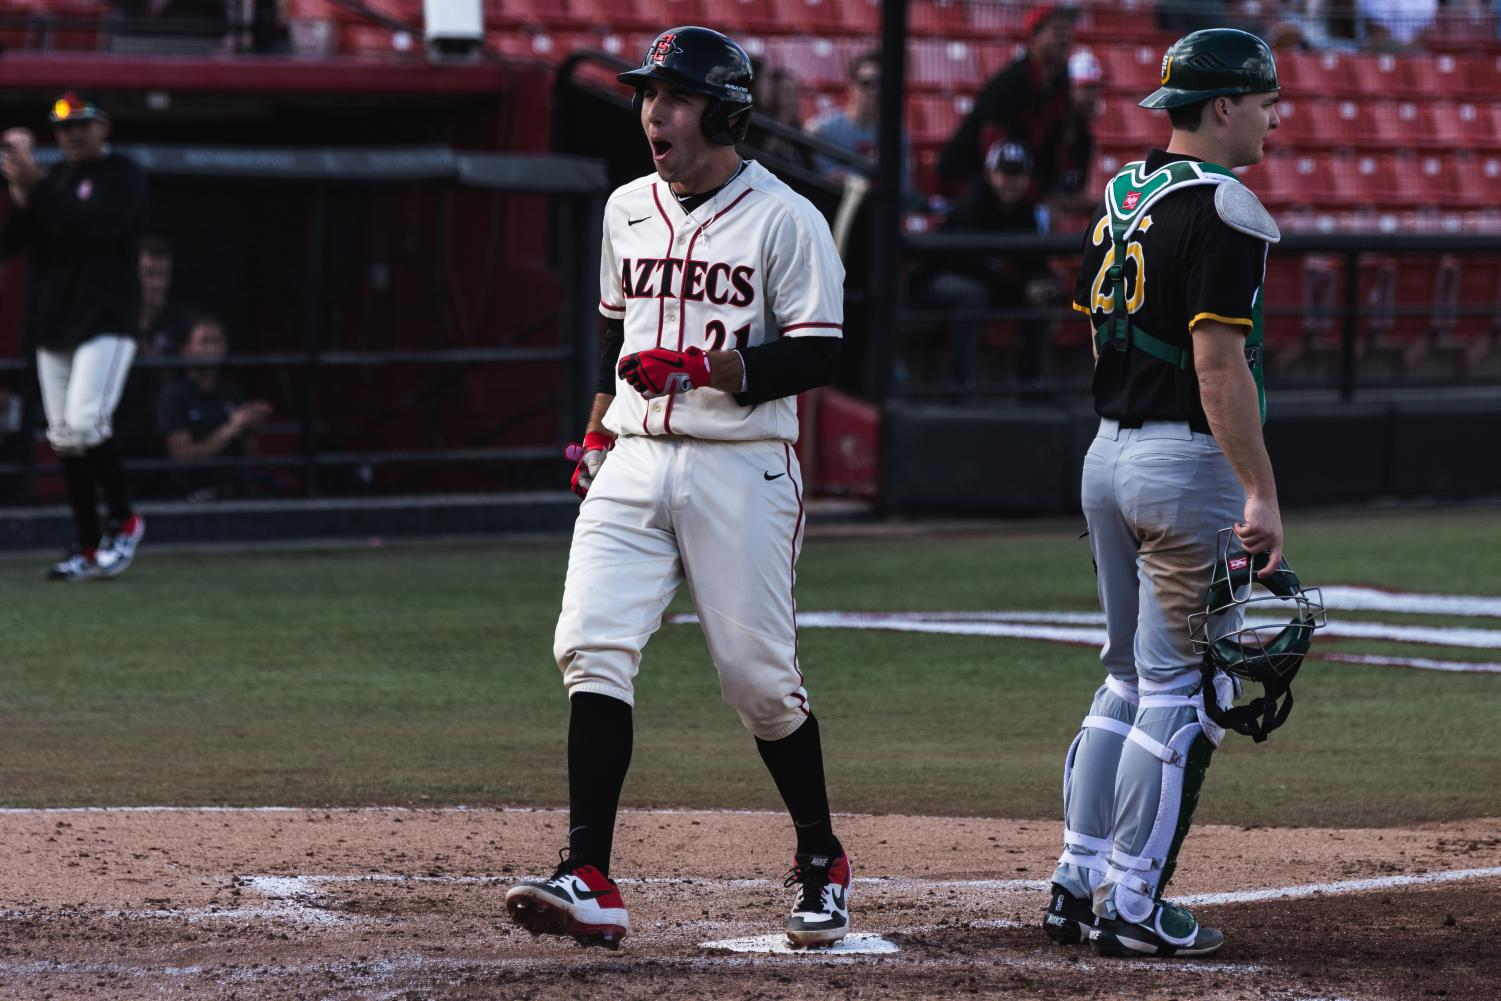 Freshman infielder Brian Leonhardt steps on home plate to score a run during the Aztecs 9-8 loss to San Francisco on Feb. 16 at Tony Gwynn Stadium.